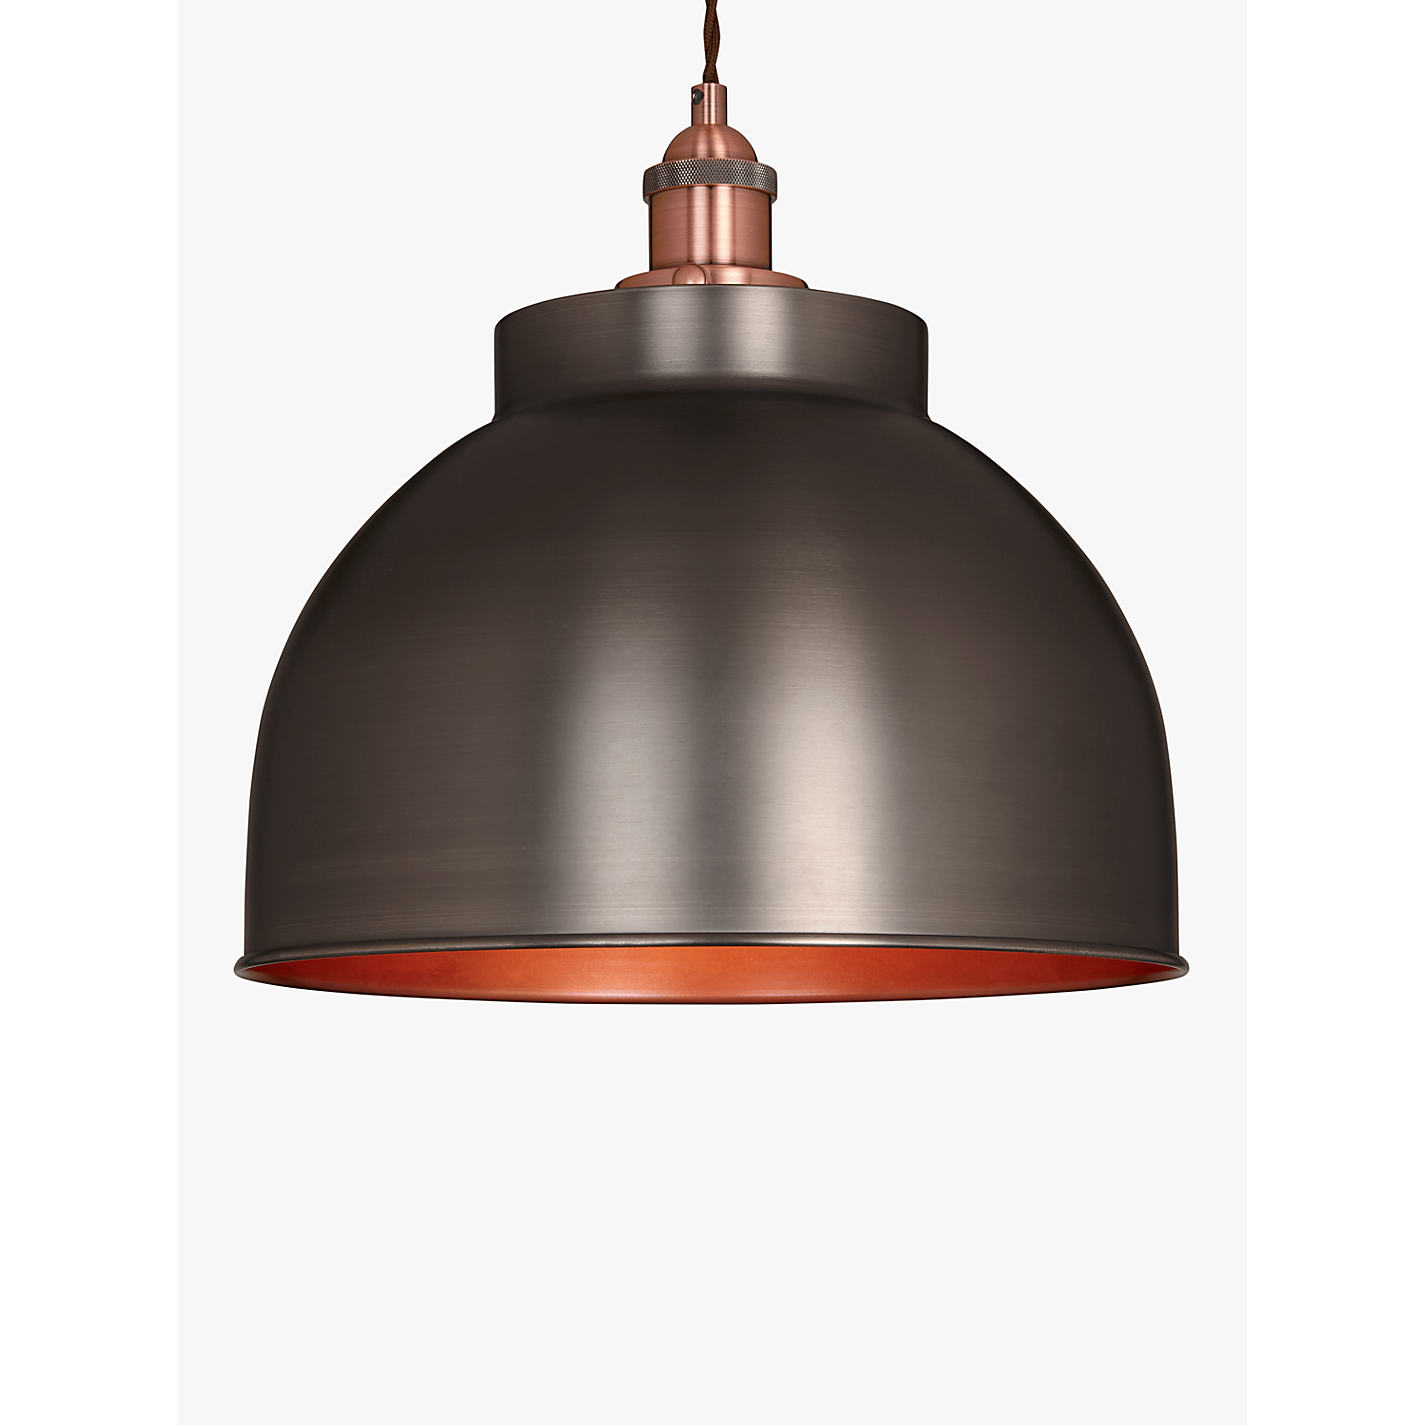 Pendant ceiling lighting john lewis buy john lewis baldwin large pendant ceiling light pewter online at johnlewis mozeypictures Gallery